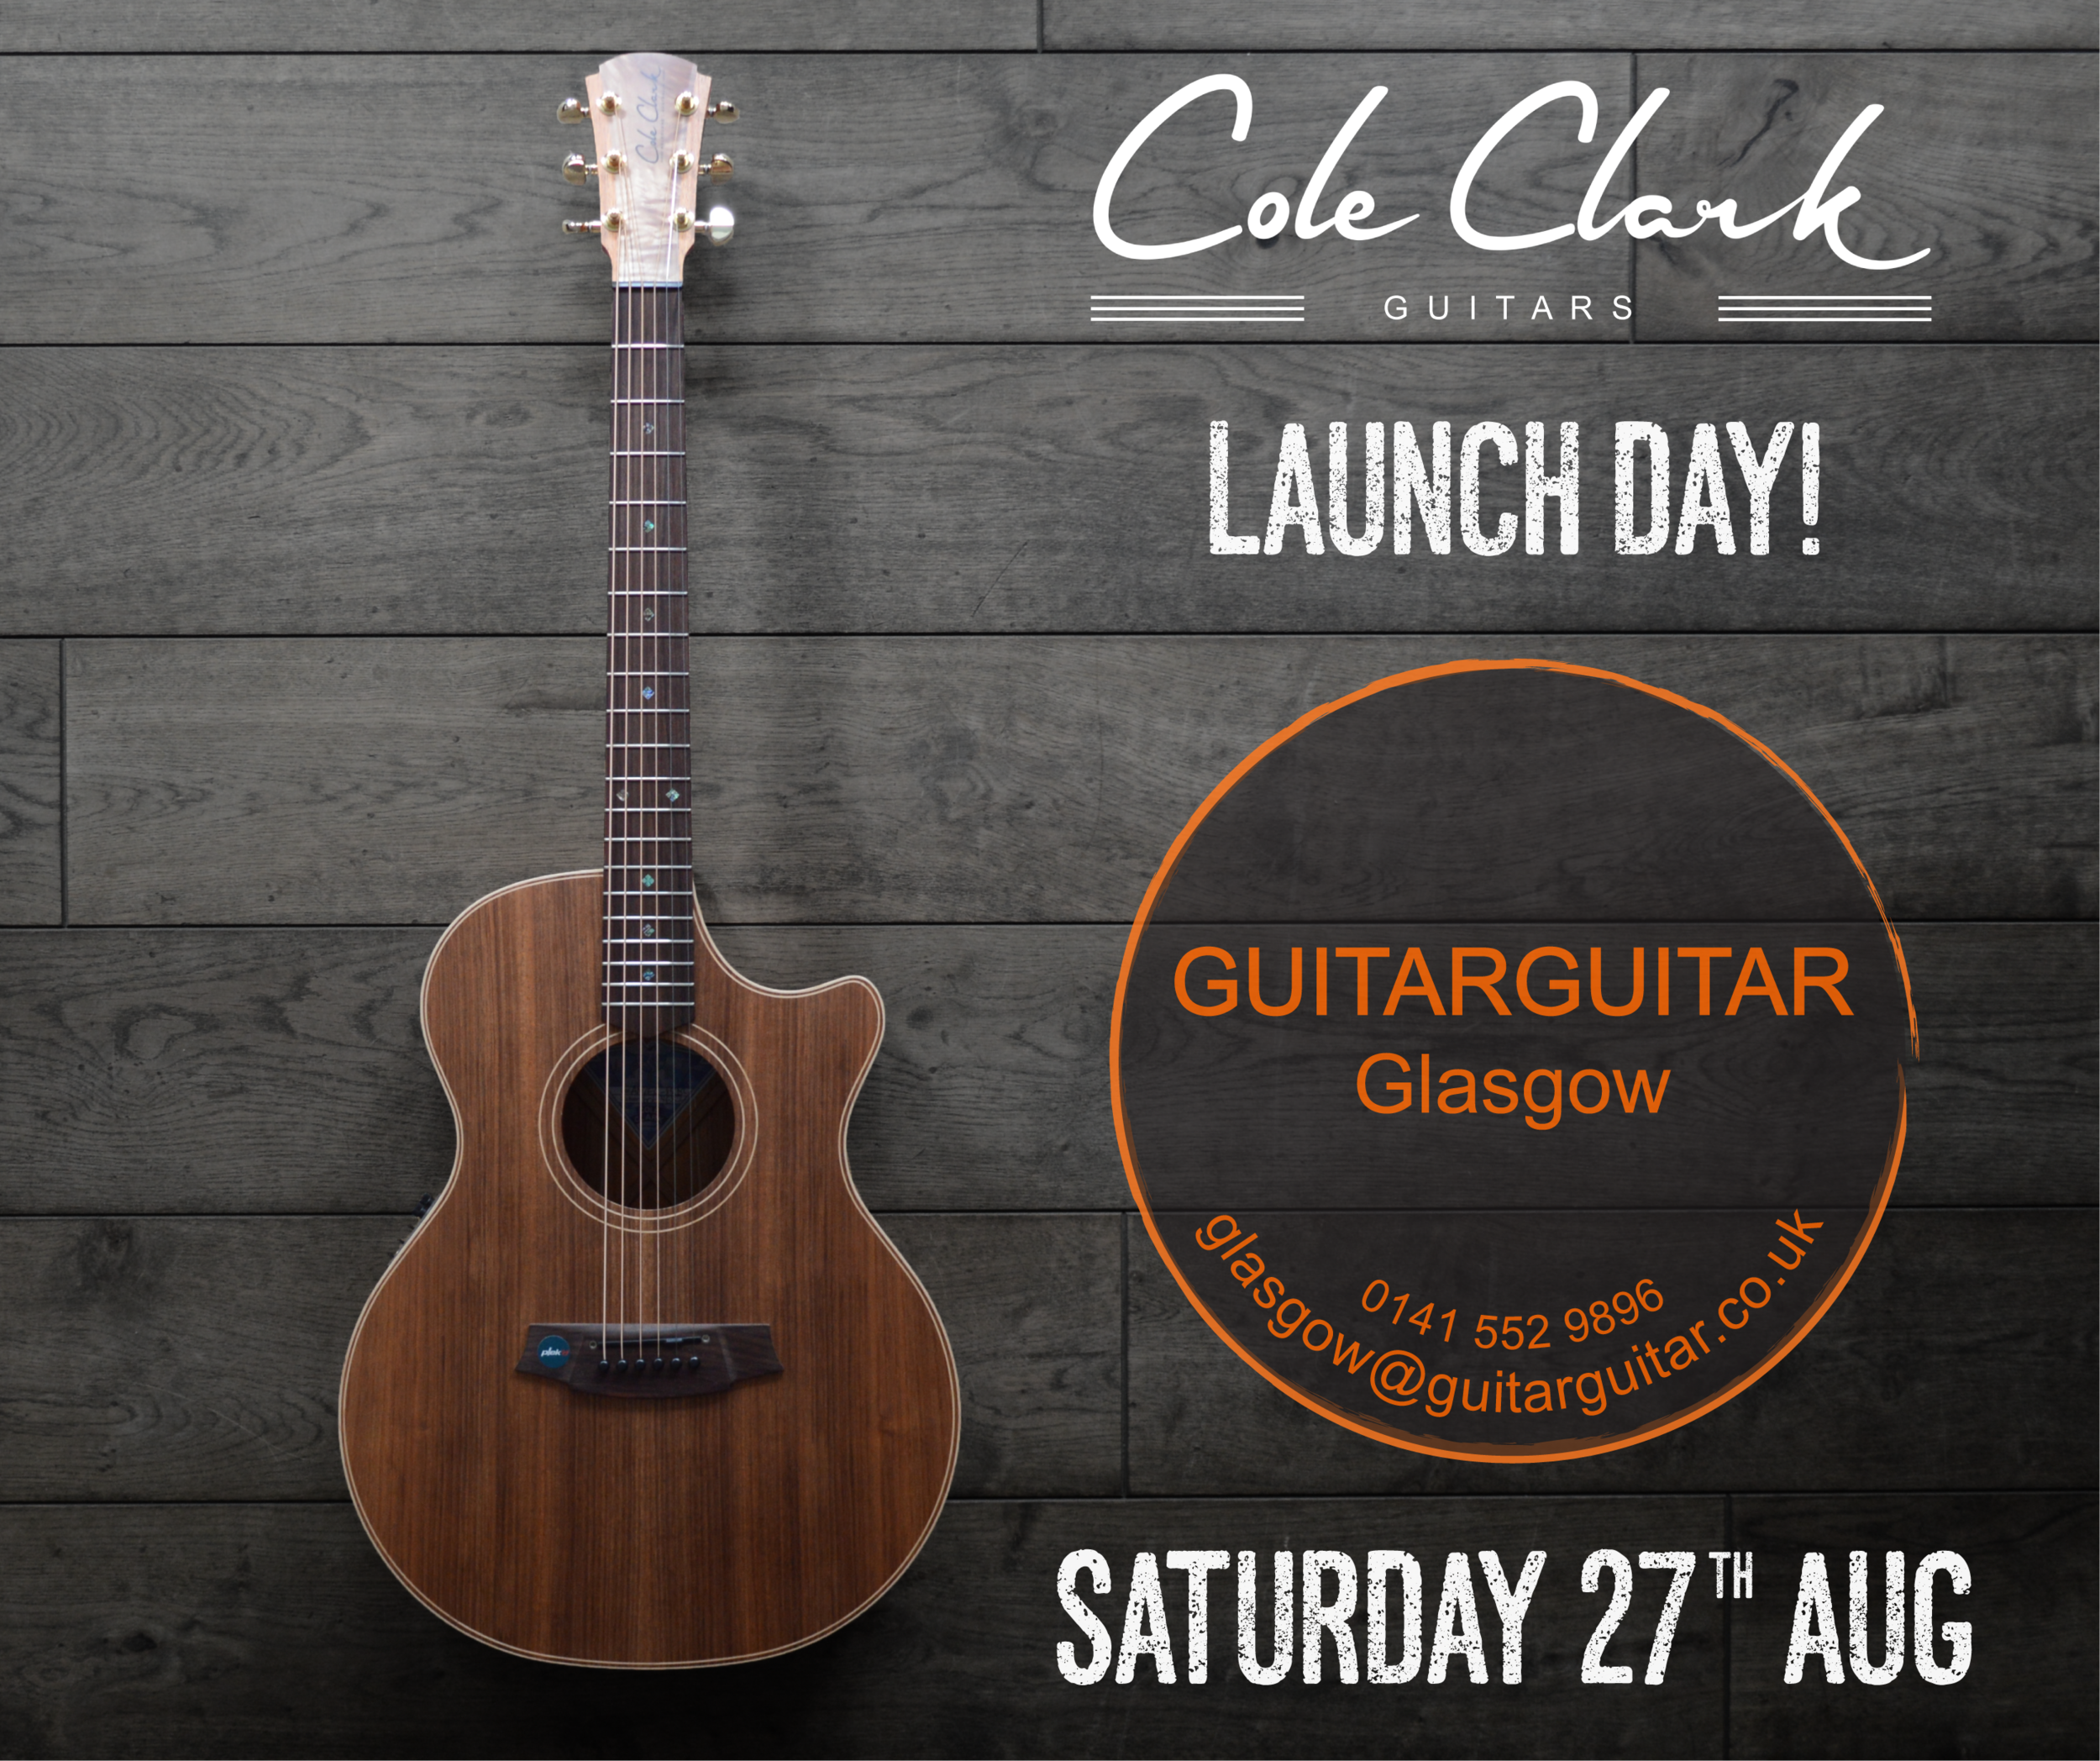 GuitarGuitar Glasgow Launch Day